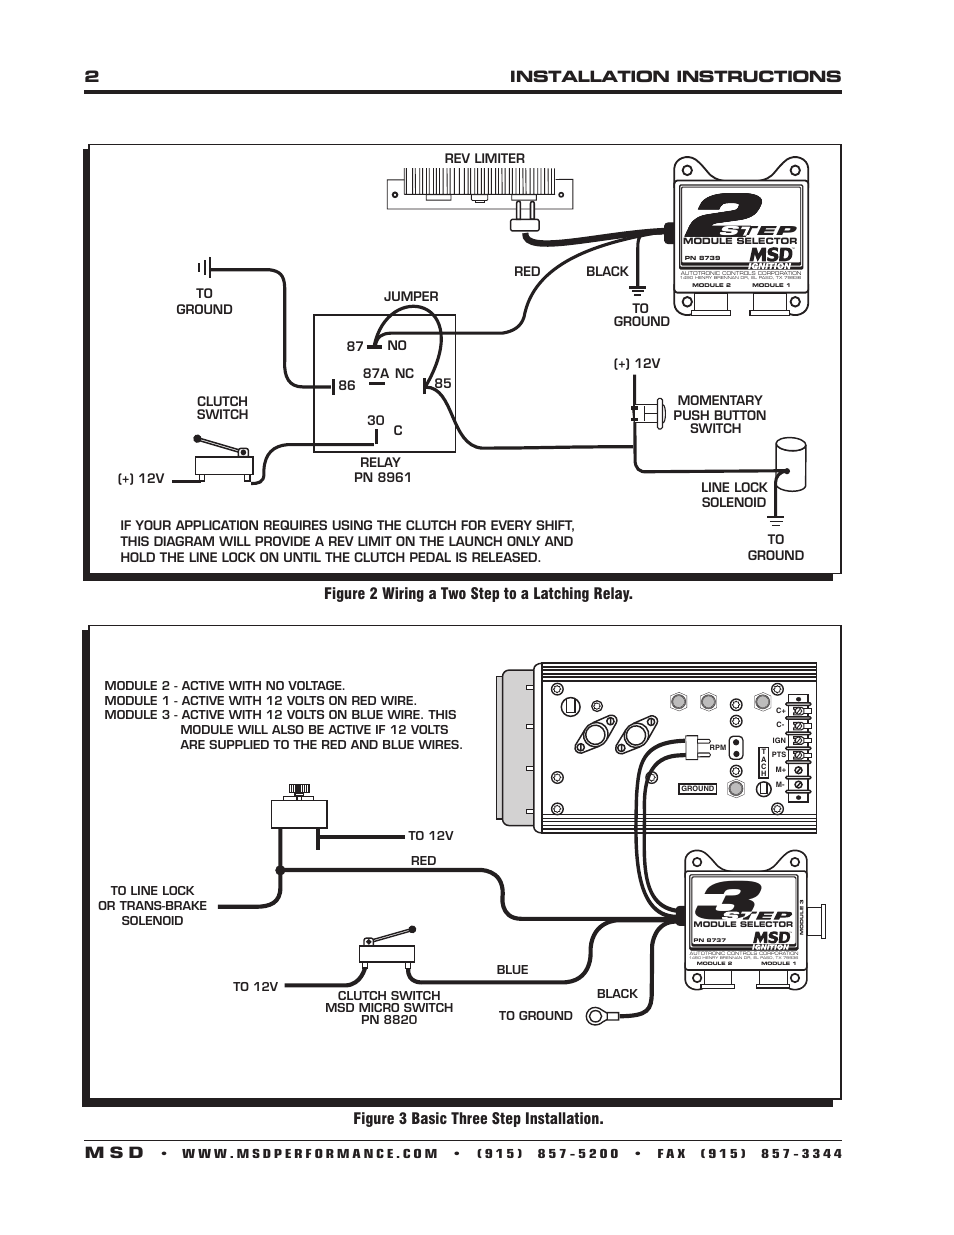 12v relay switch wiring diagram series 2installation instructions m s d, figure 3 basic three step installation, 2 a two ...